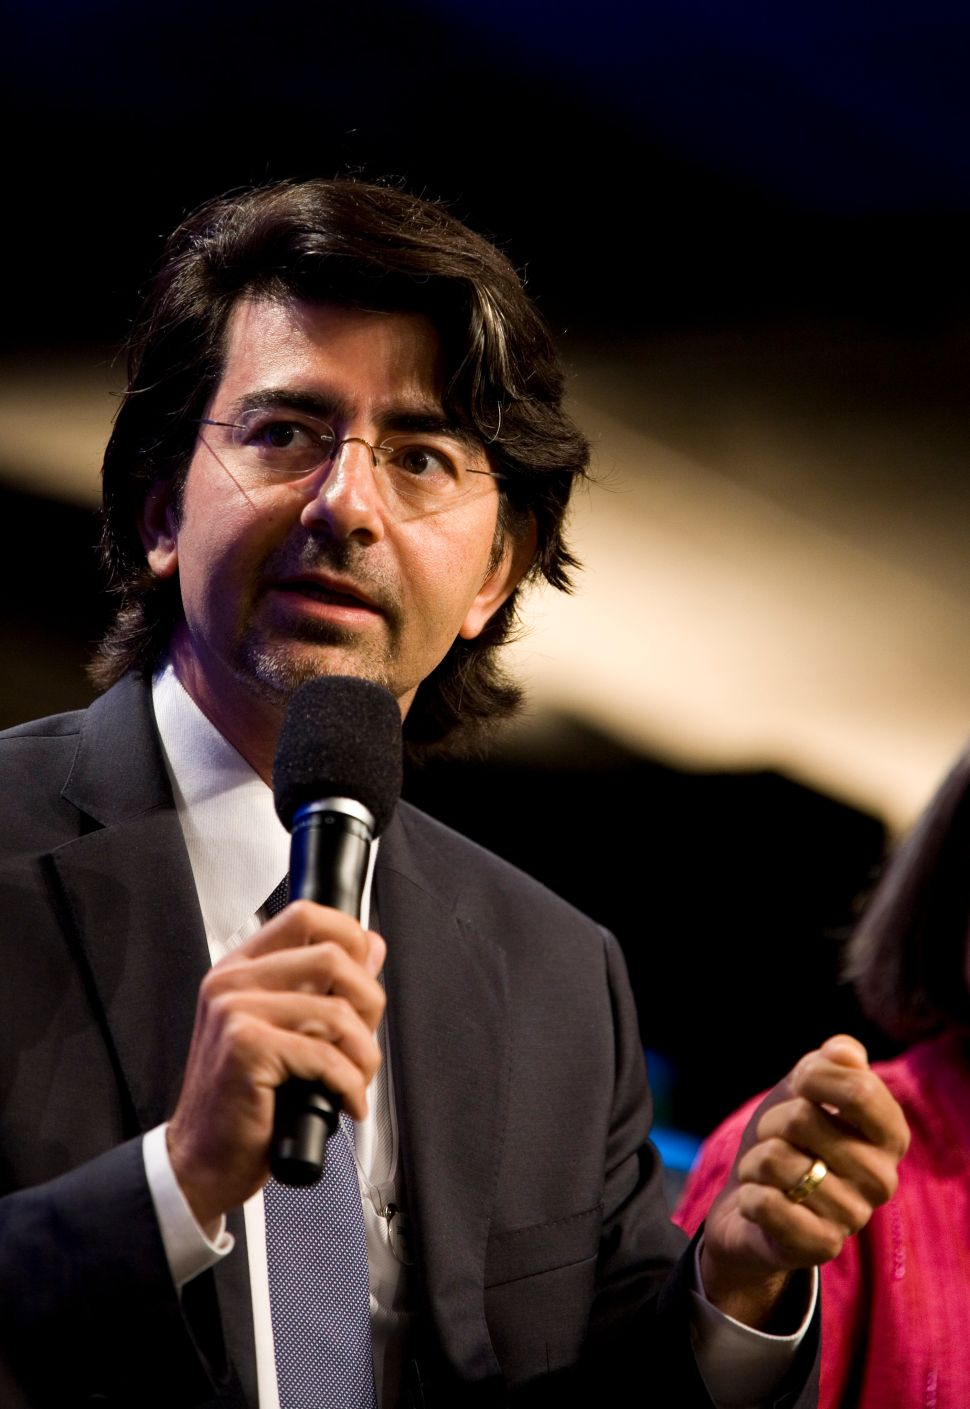 Pierre Omidyar Bought Franklin Foer Twitter Followers